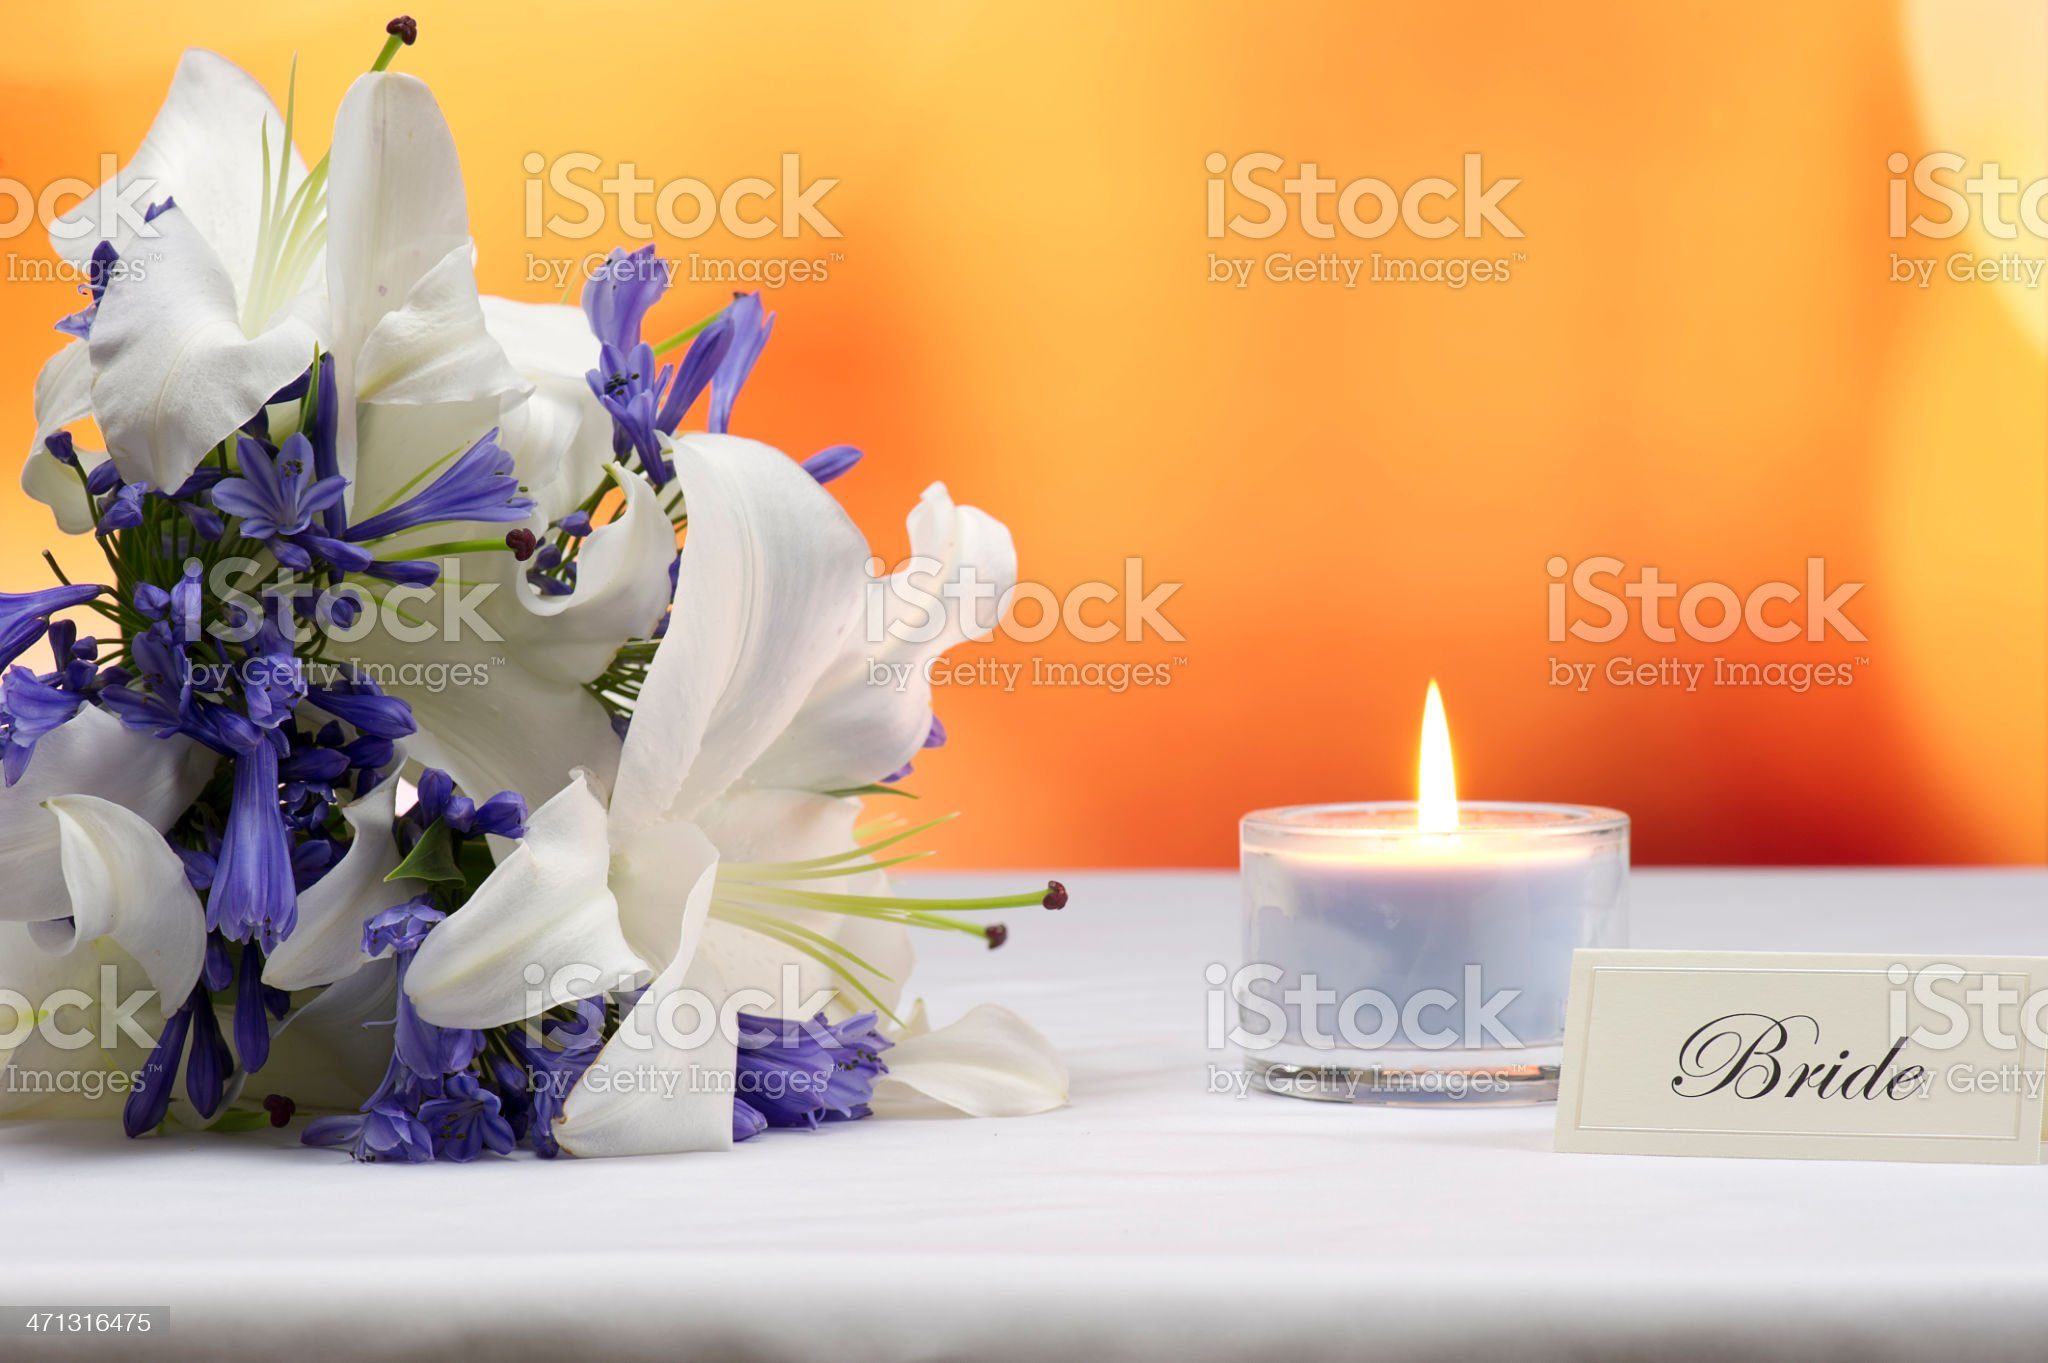 Pride's place at a wedding reception royalty-free stock photo